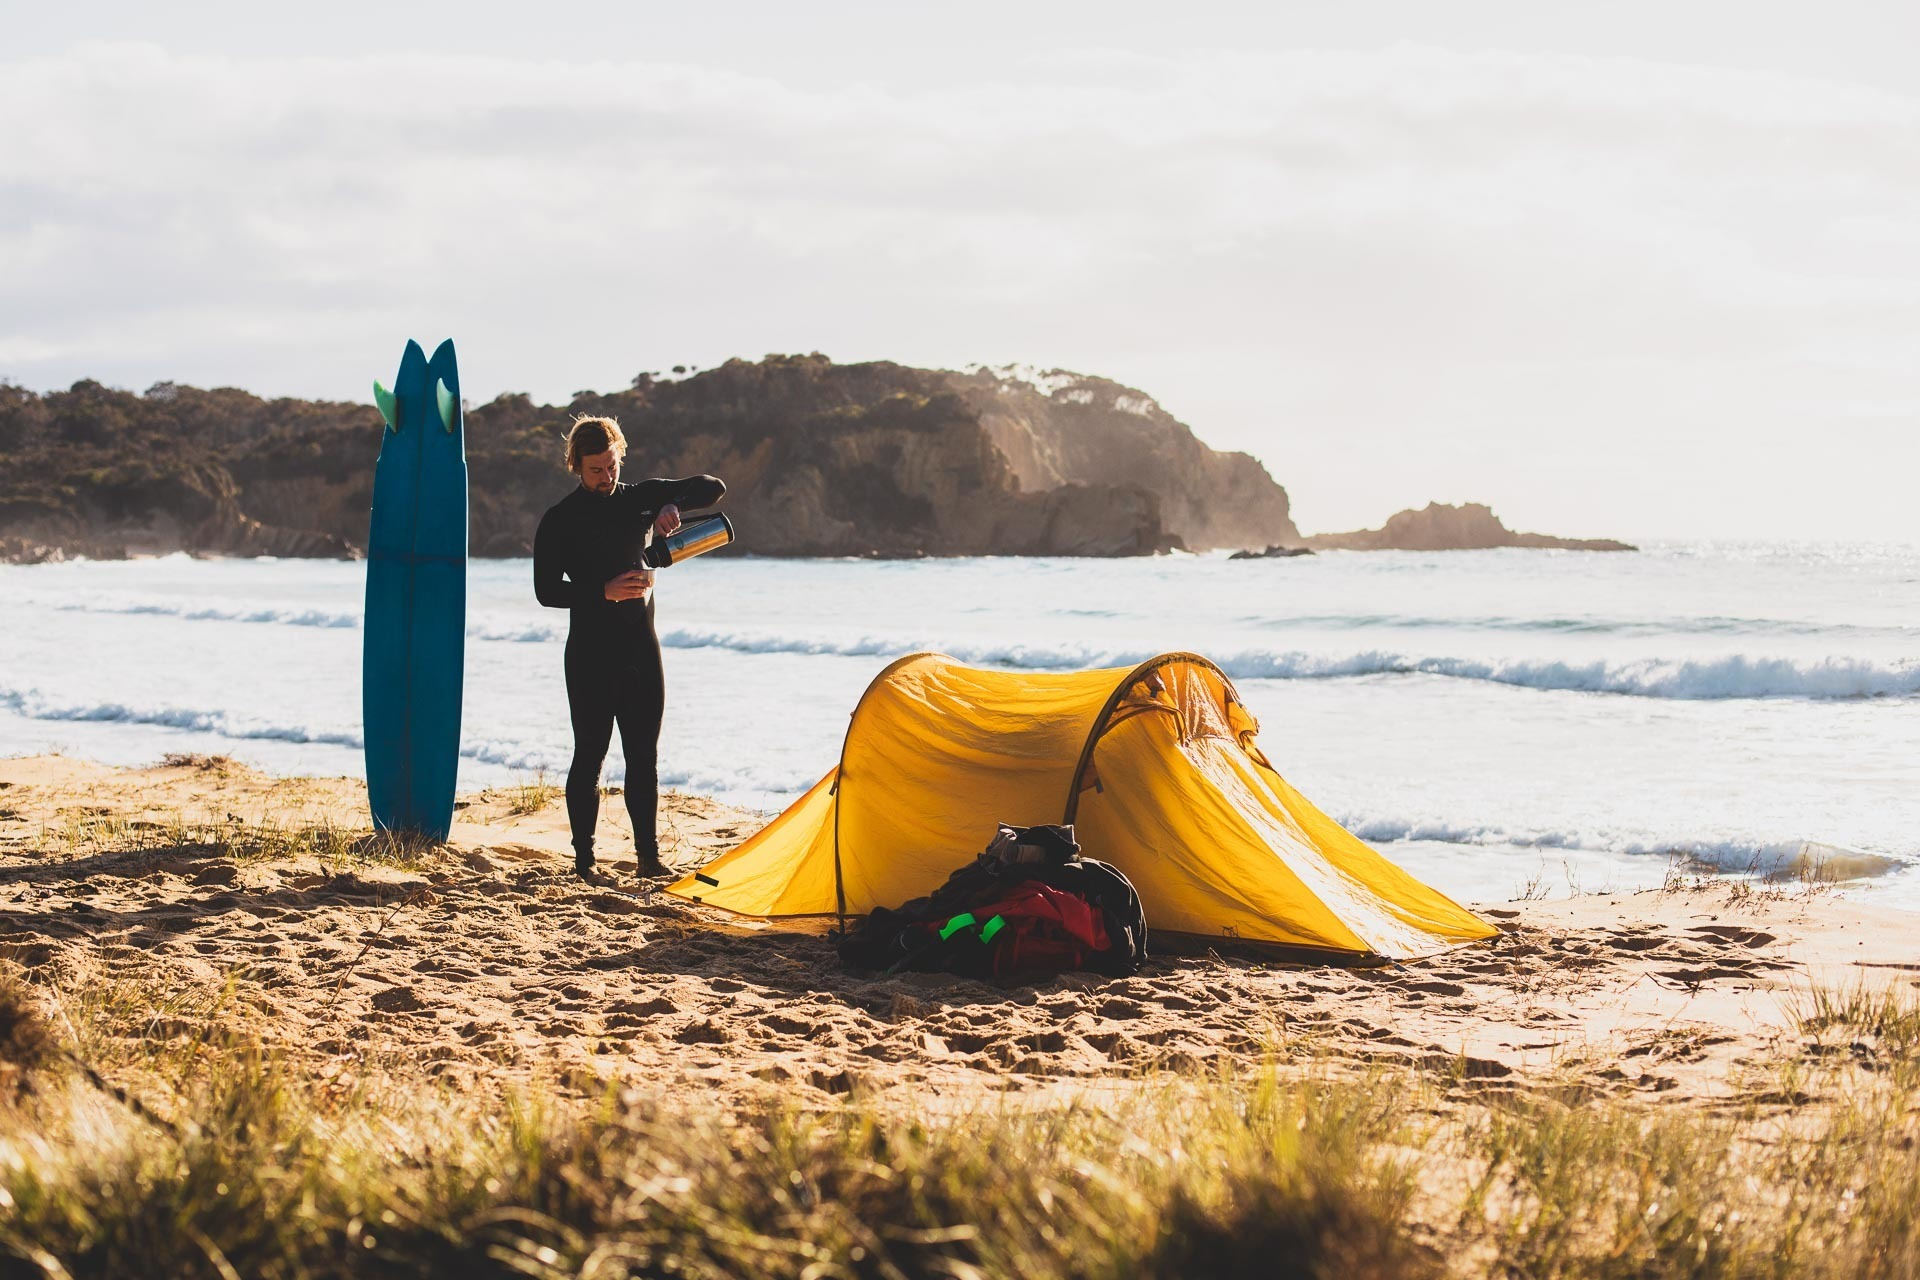 Sea to Summit in Australia – All In A Day's Work, guy williment, surf, camping, tent, beach, nsw, coffee